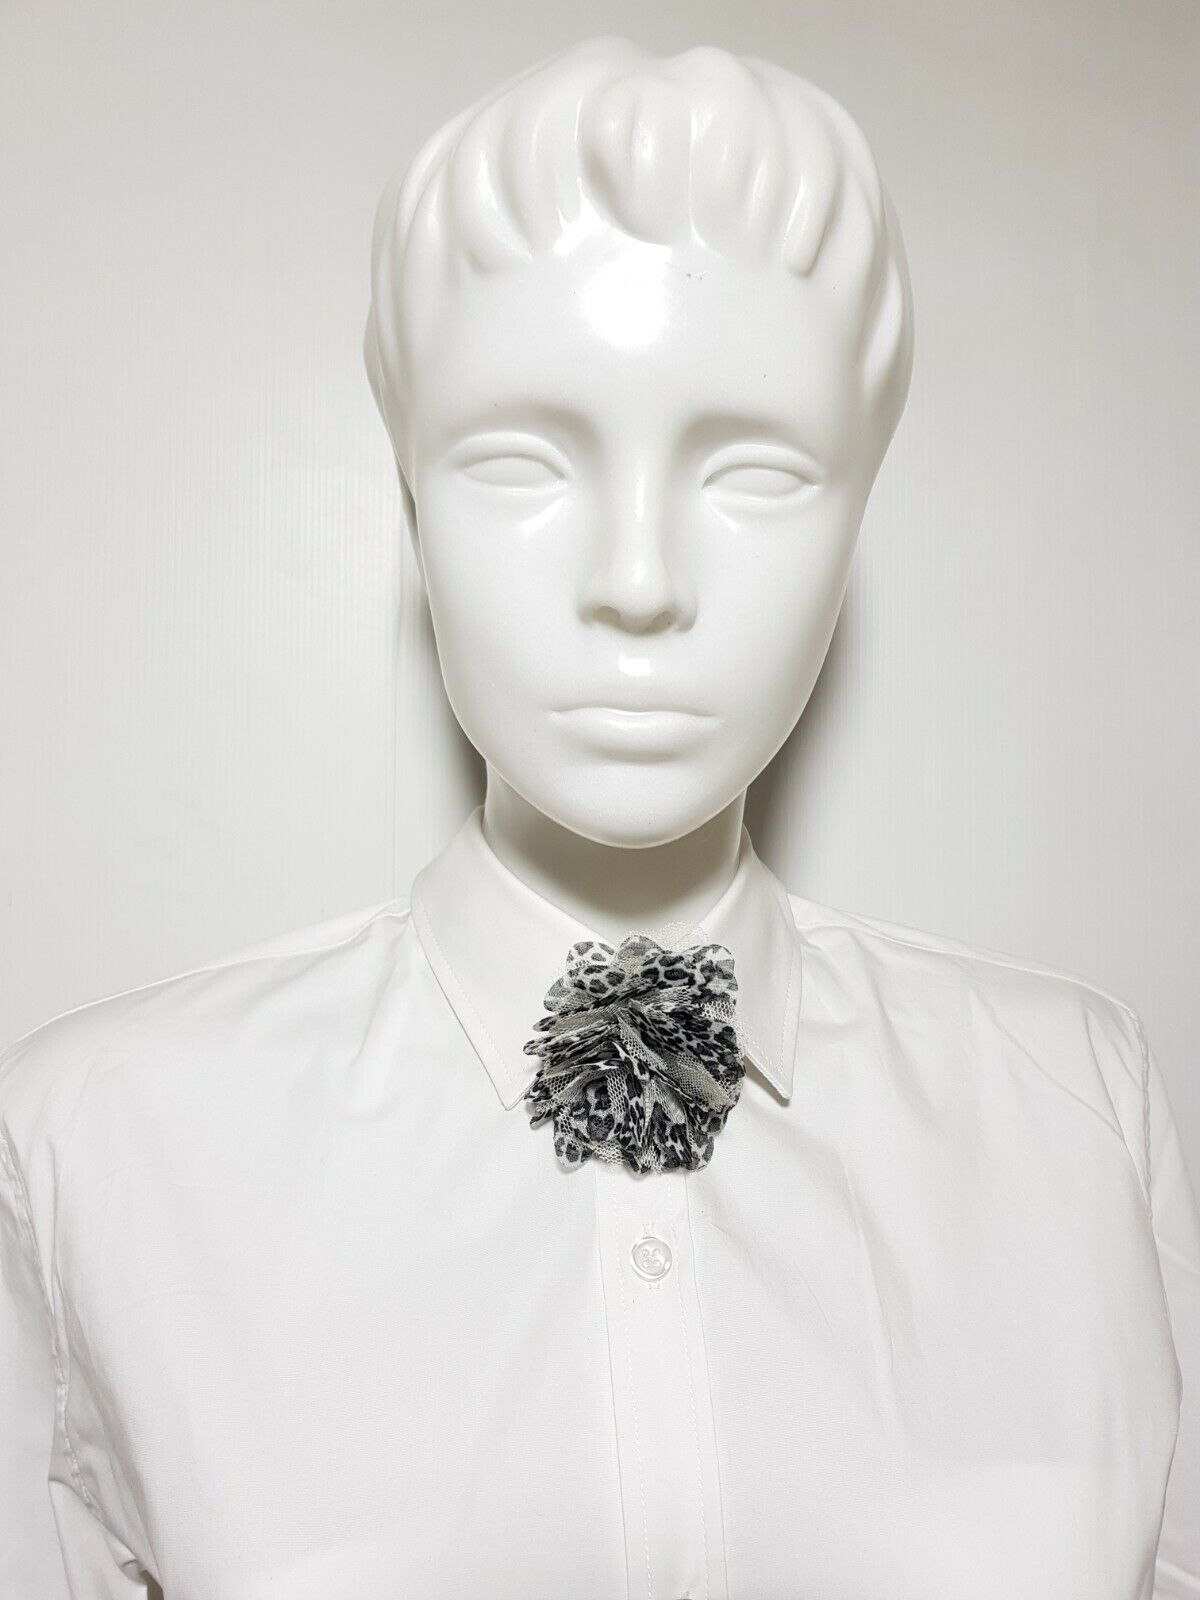 New Claire's Girl's Women's Bow Tie Black White Lace Flower Bowties